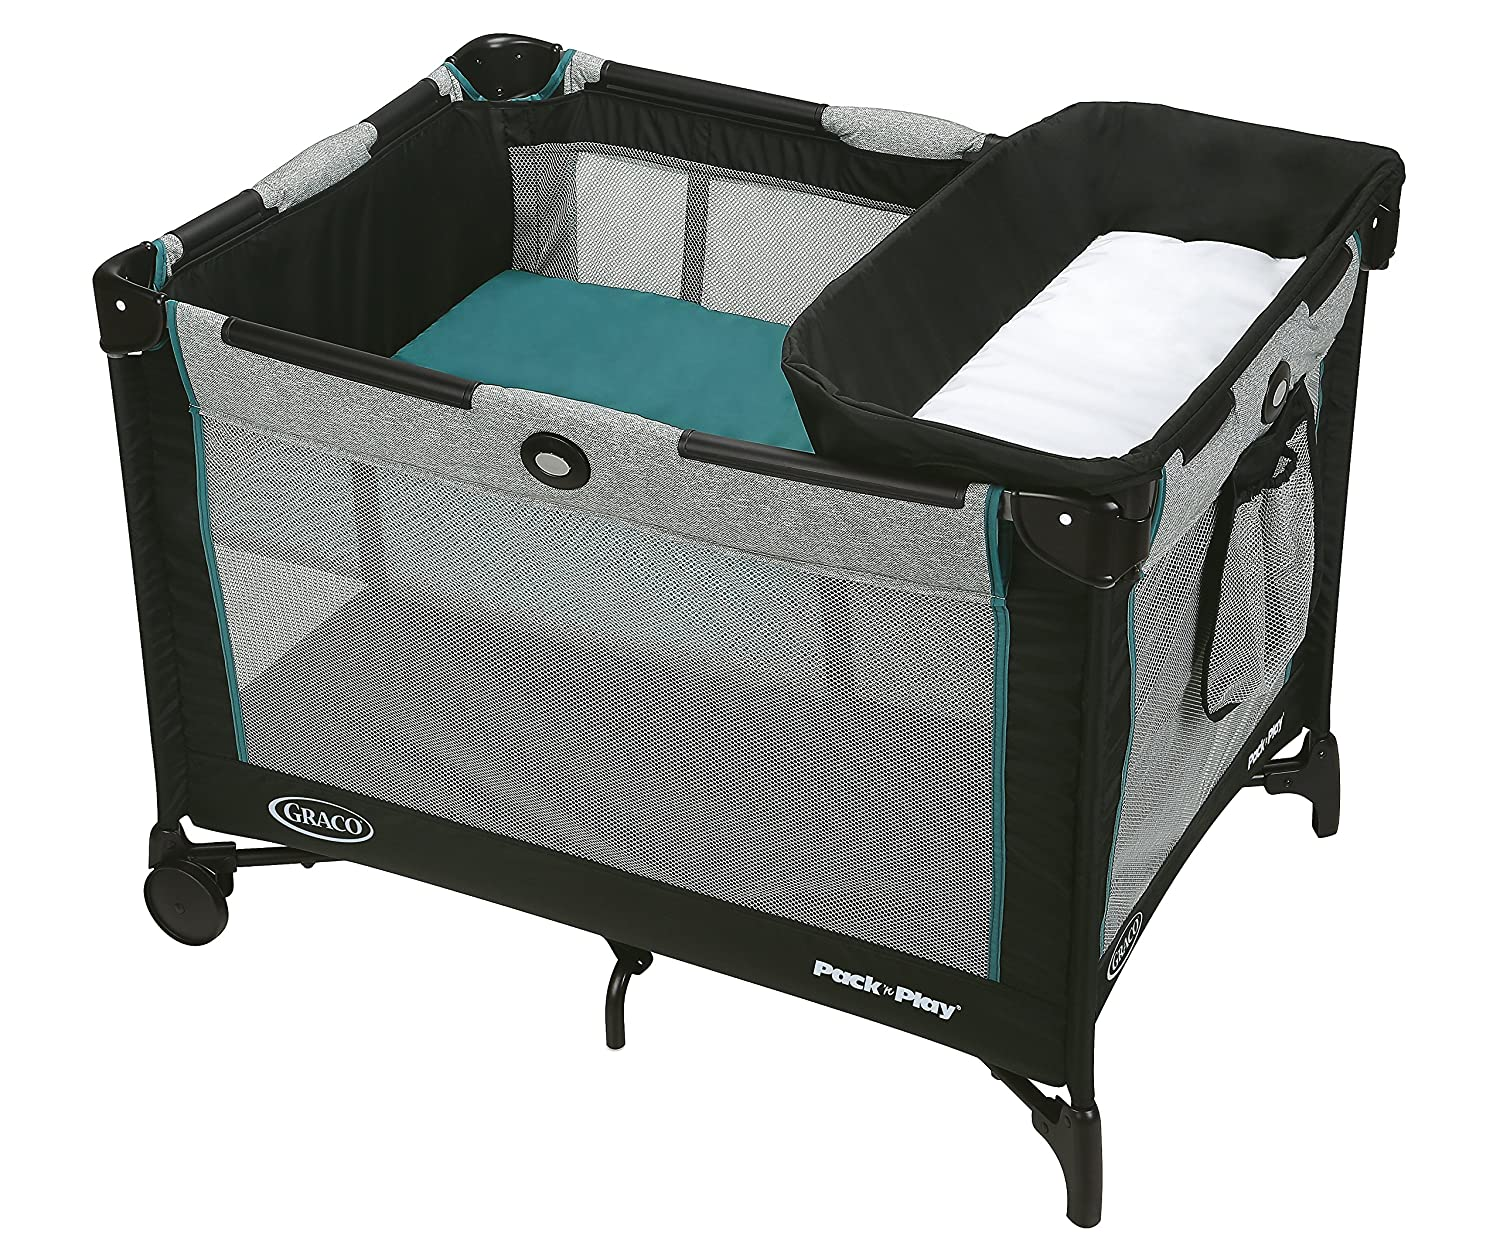 Graco Pack 'n Play Playard Simple Solutions Portable Play yard, Darcie 2000534